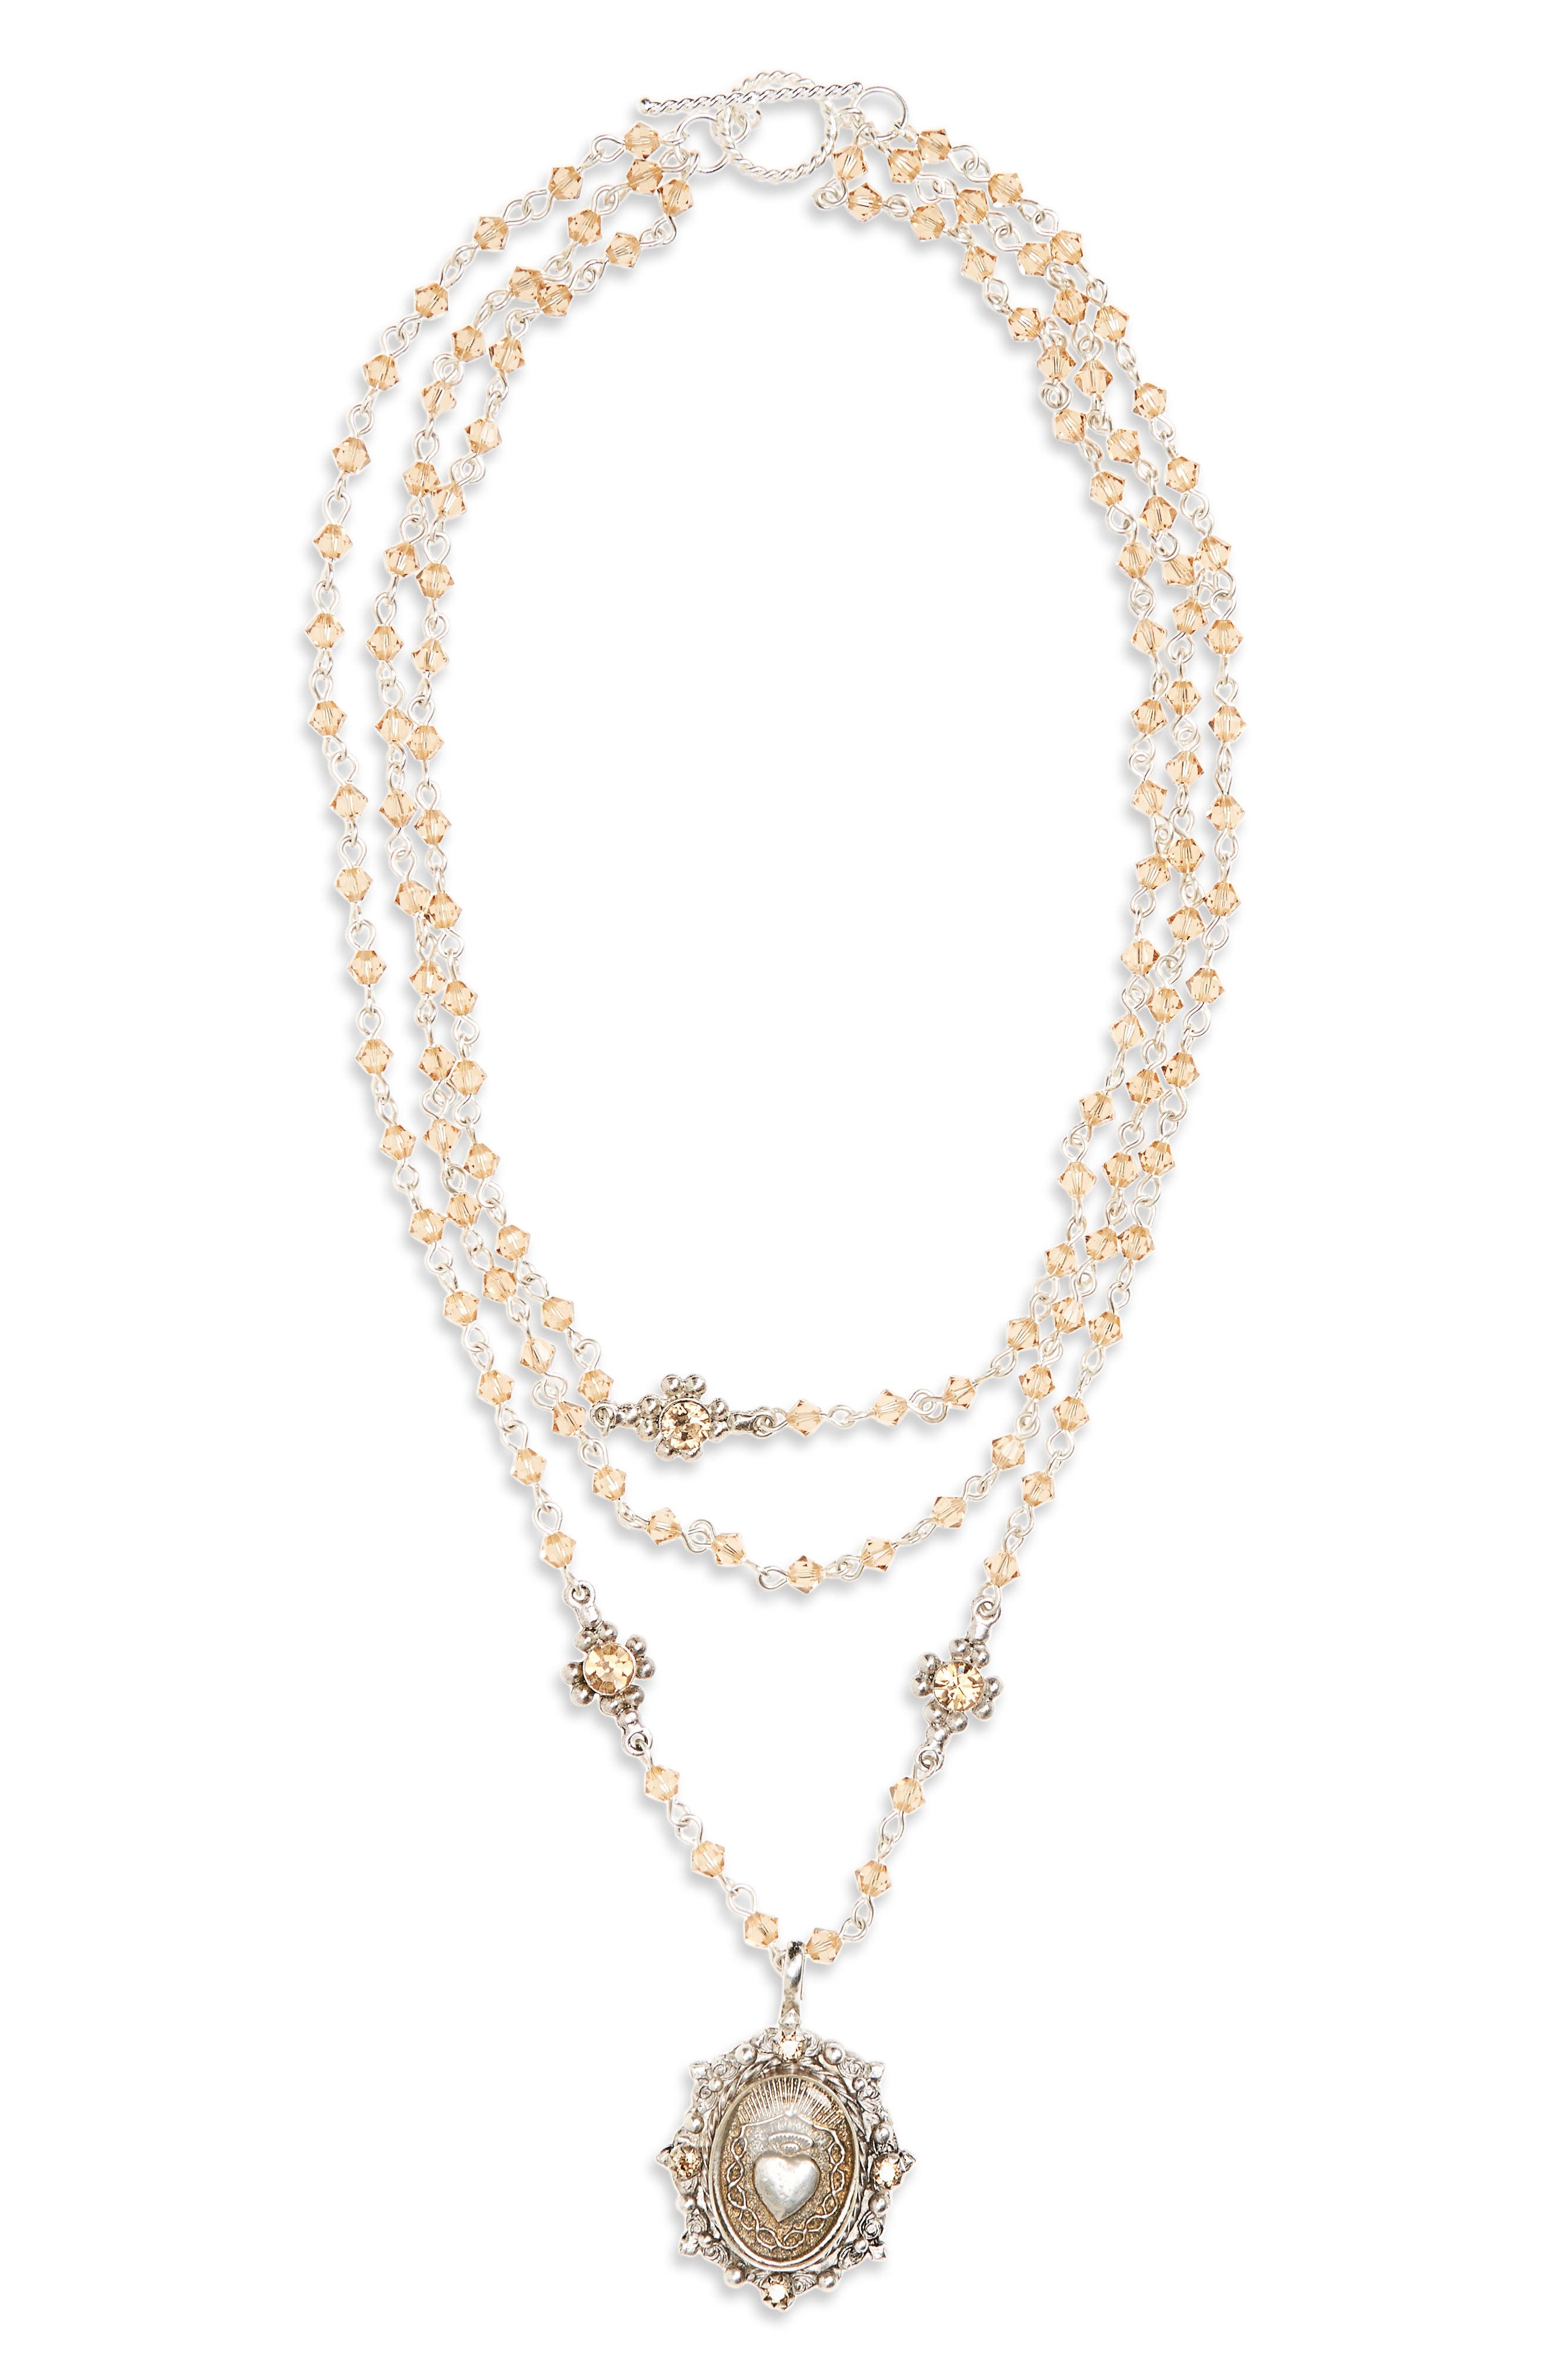 Main Image - Virgins Saints & Angels Bicone Sacred Heart Rosary Necklace (Special Purchase) (Nordstrom Exclusive)